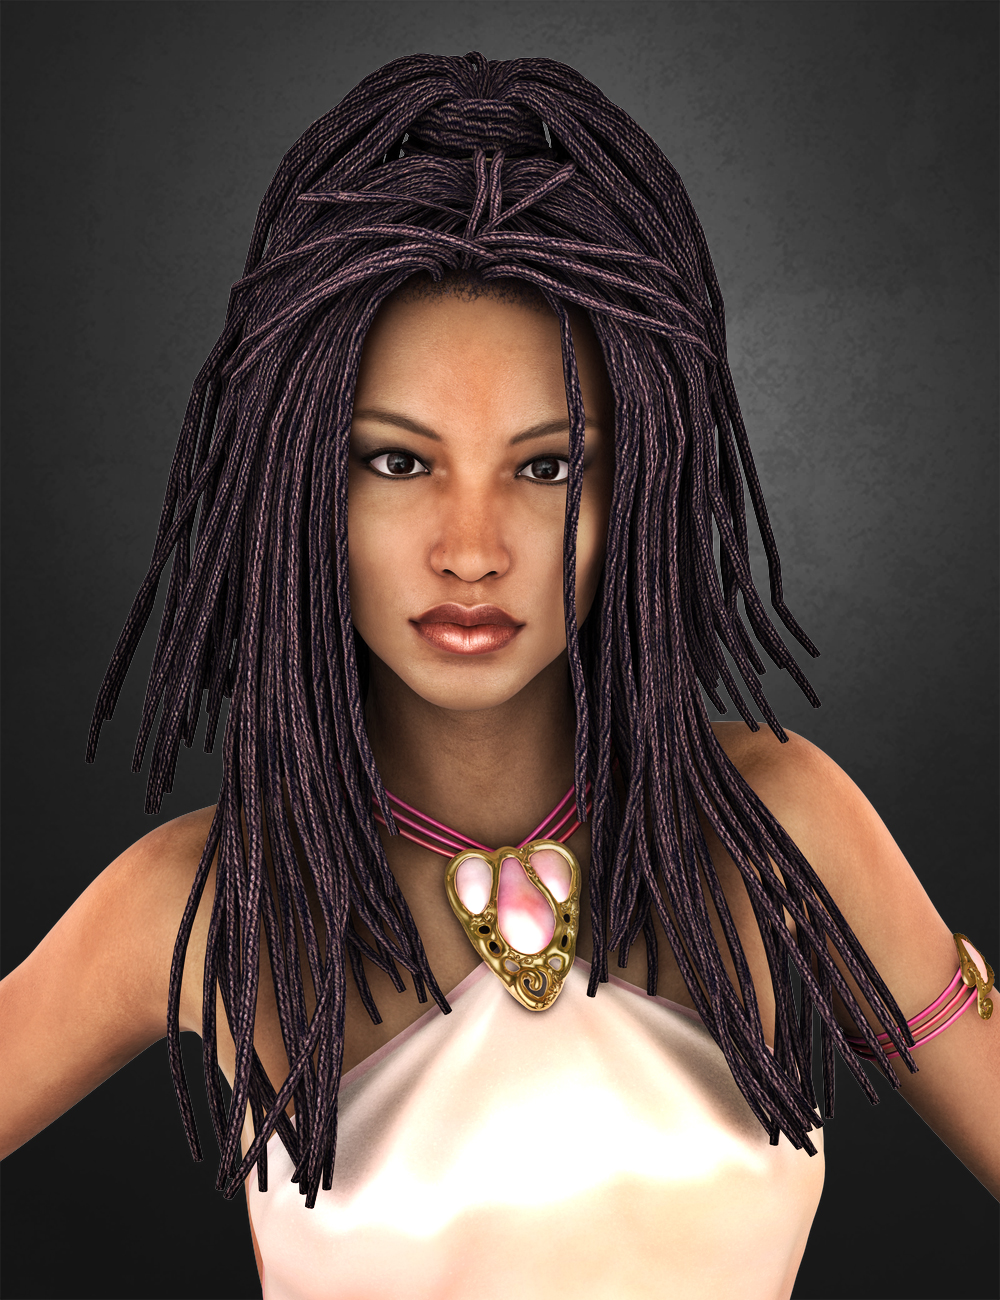 Medea Hair ADD-ON for Genesis 2 Female(s) and Victoria 4 by: SWAM, 3D Models by Daz 3D